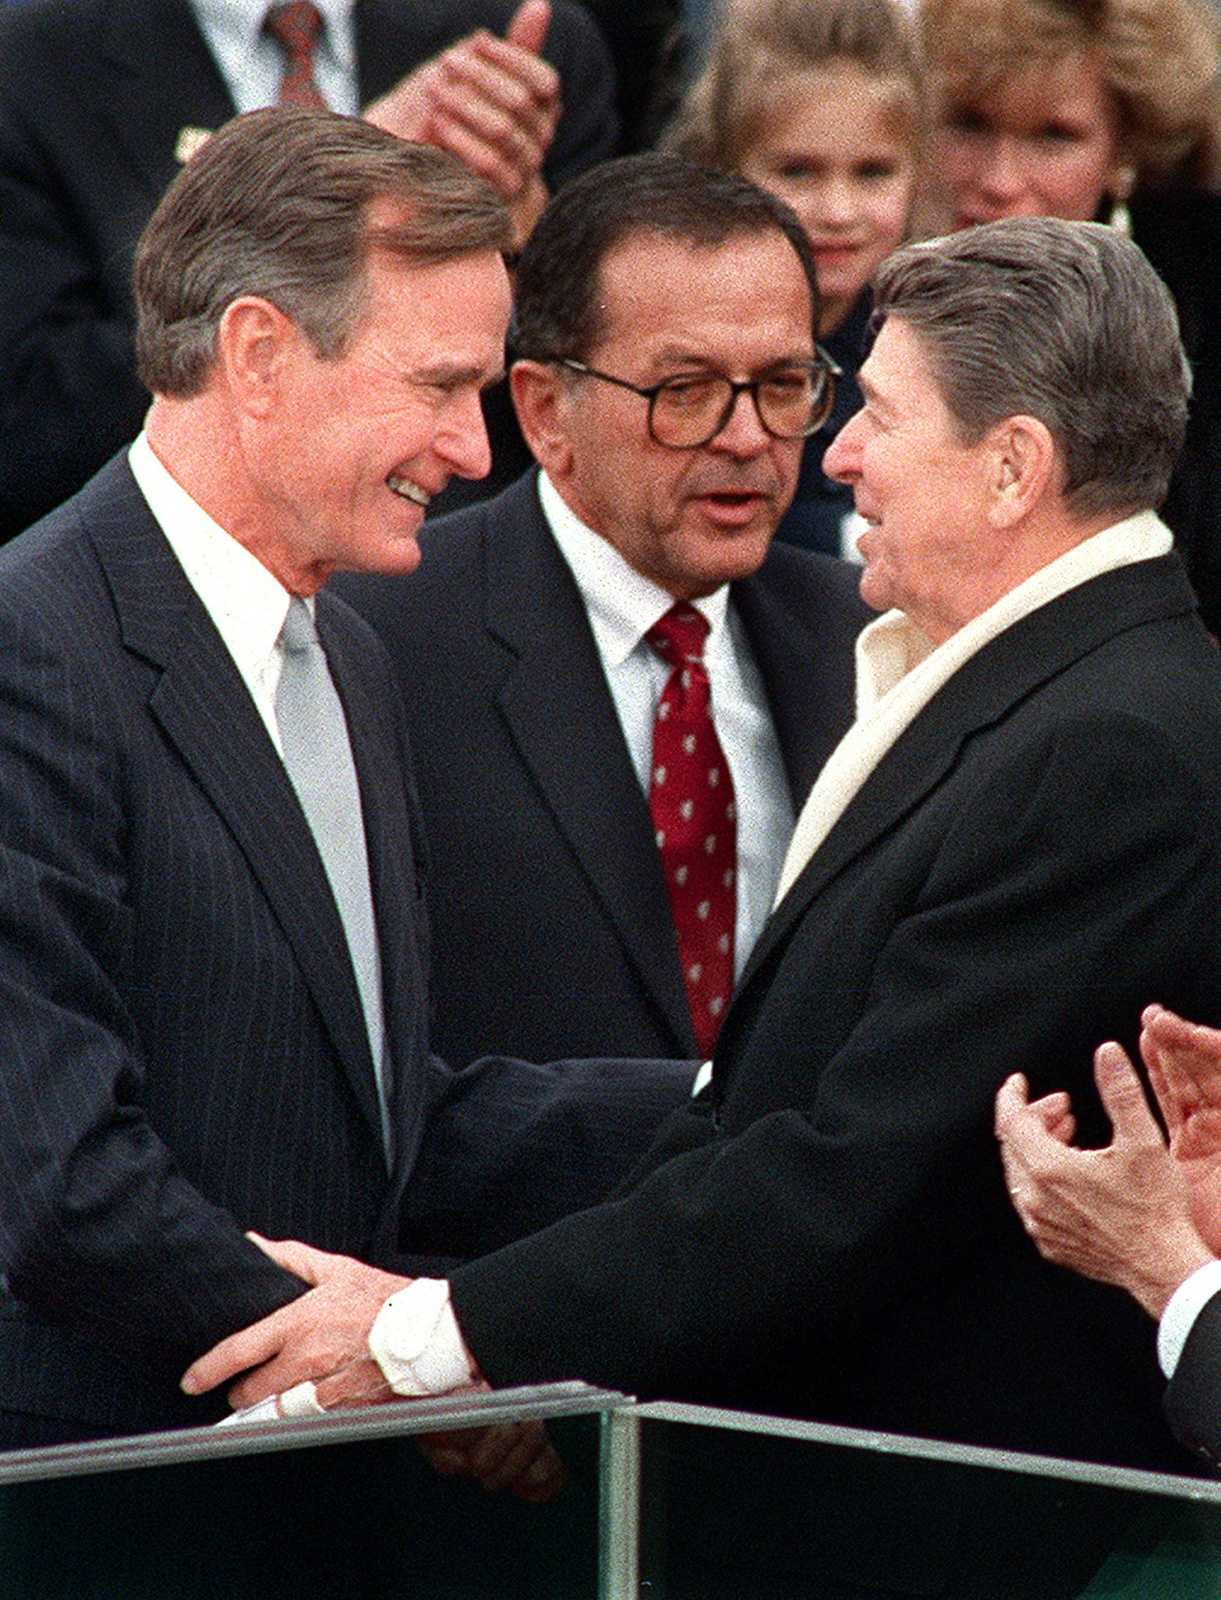 President Ronald Reagan greets newly-inaugurated president George Bush, Sr., during Bush's swearing-in ceremony, January 20, 1989, in Washington, D.C. (Mimi Out) (June 8) Photograph by Joe Burbank/ Orlando Sentinel